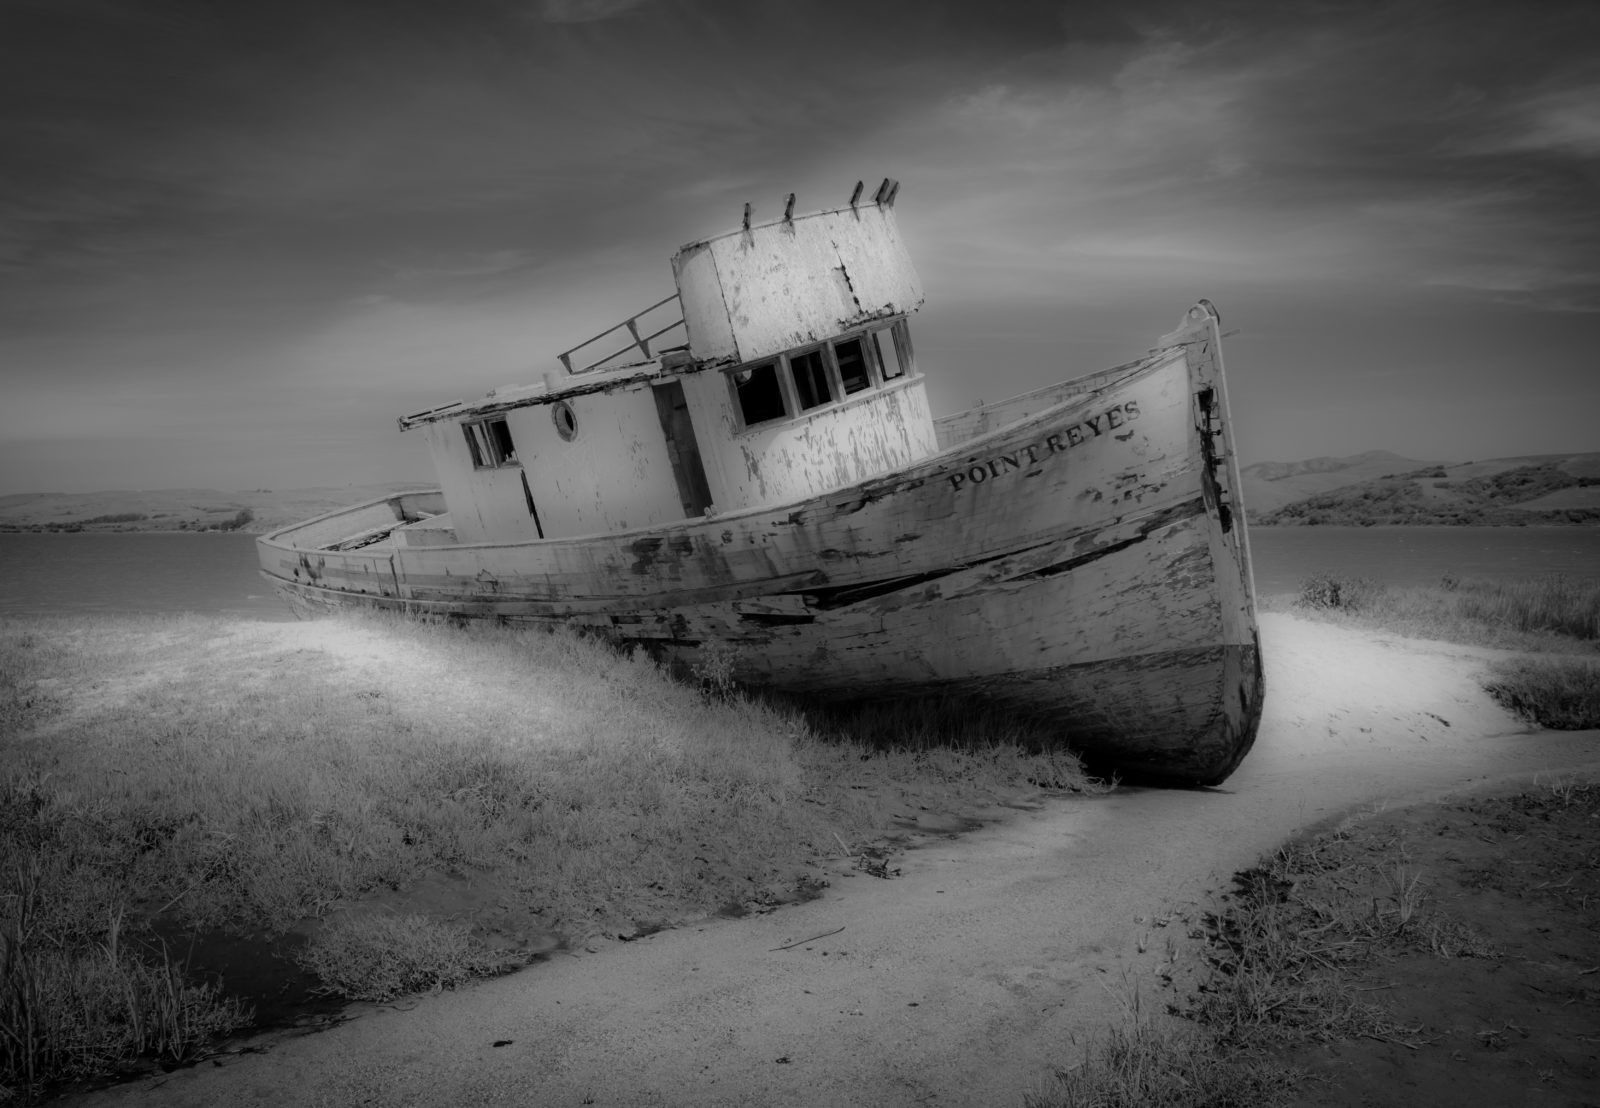 The Wreck of the Point Reyes